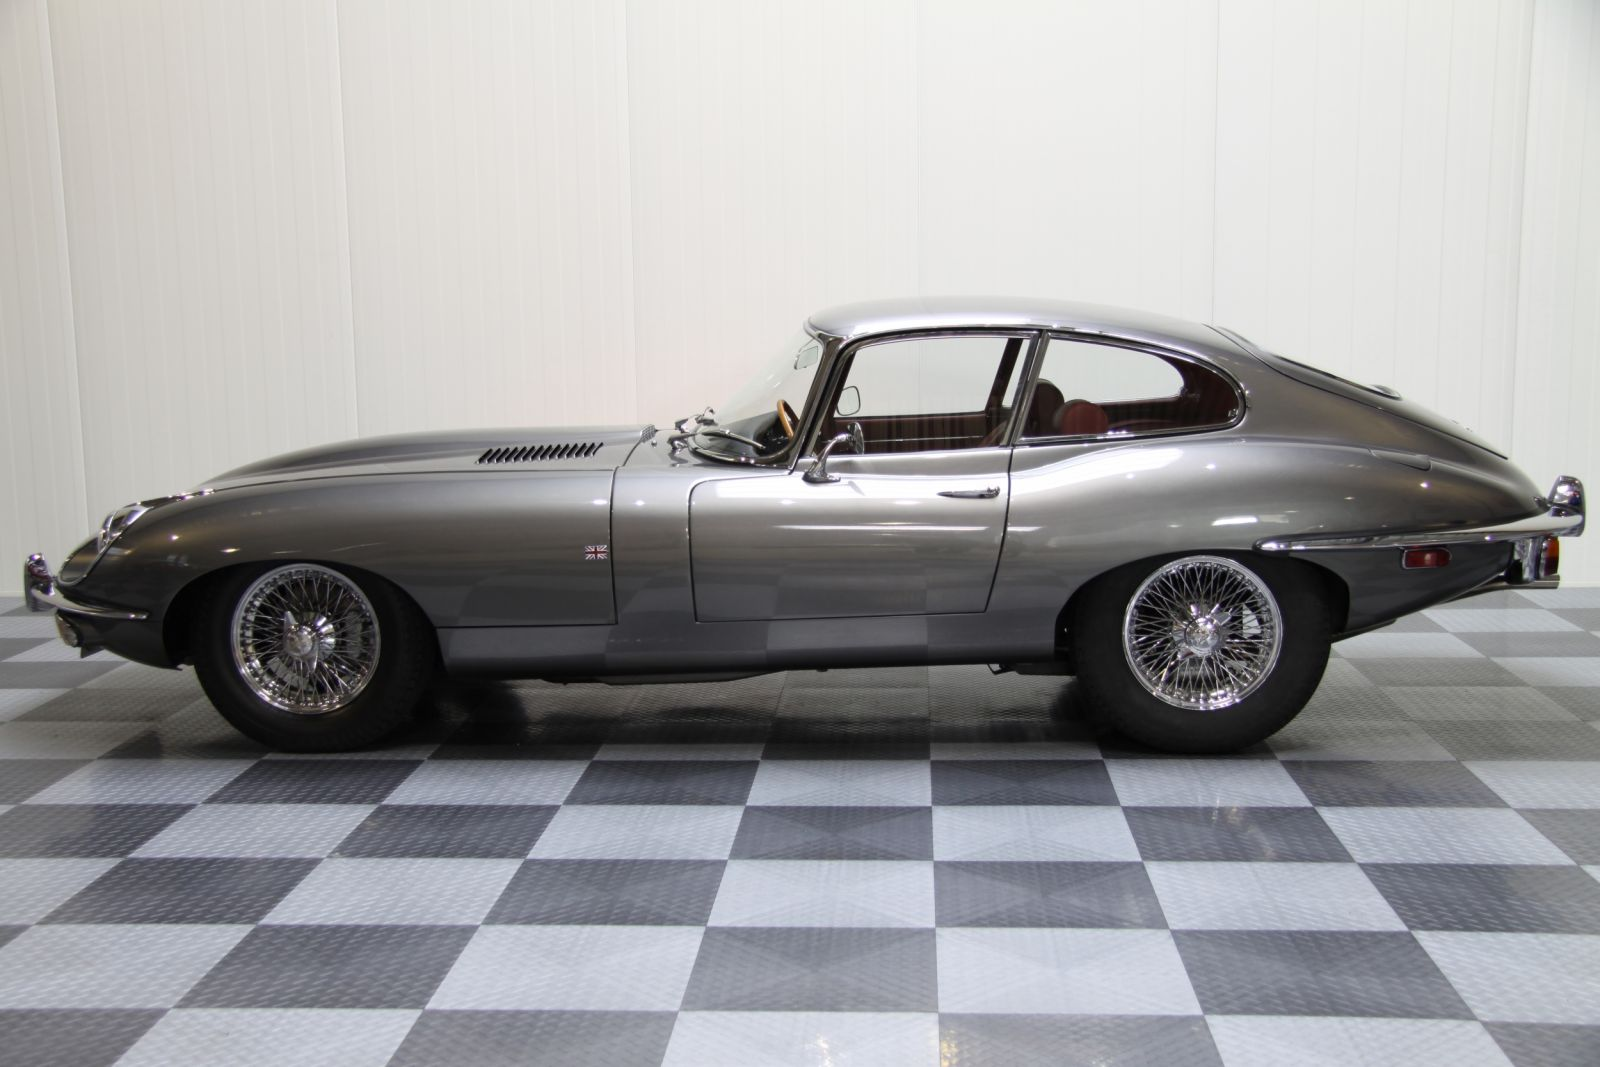 Jaguar E Type Coupe 42 Series 2 Fhc on 1969 jaguar xke